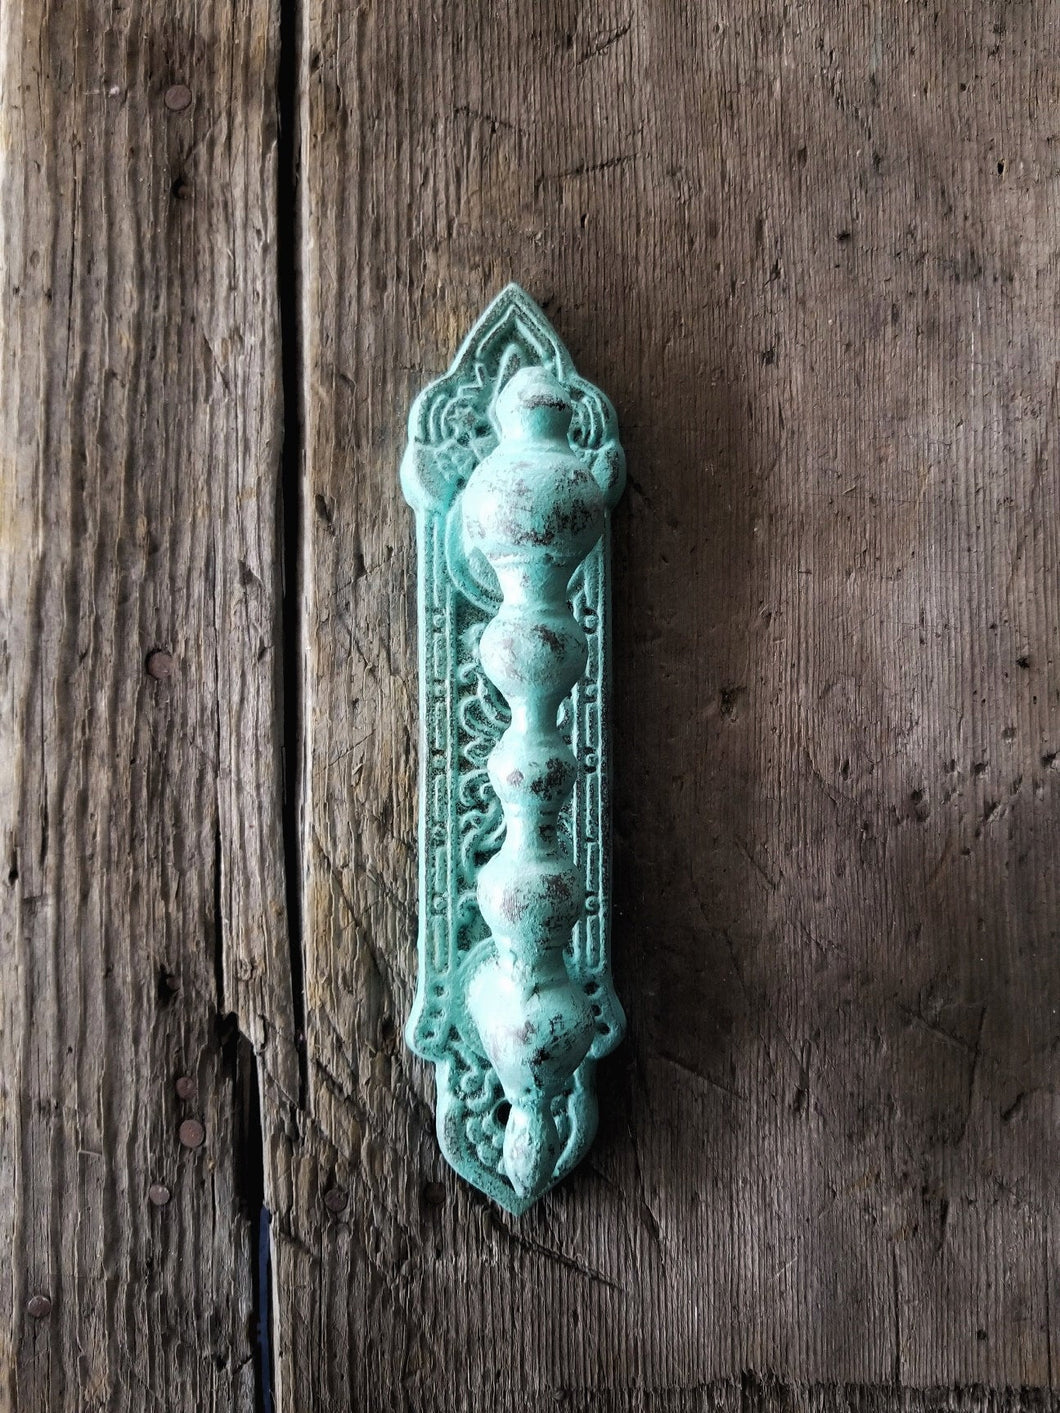 Rustic Beaded Door Knocker